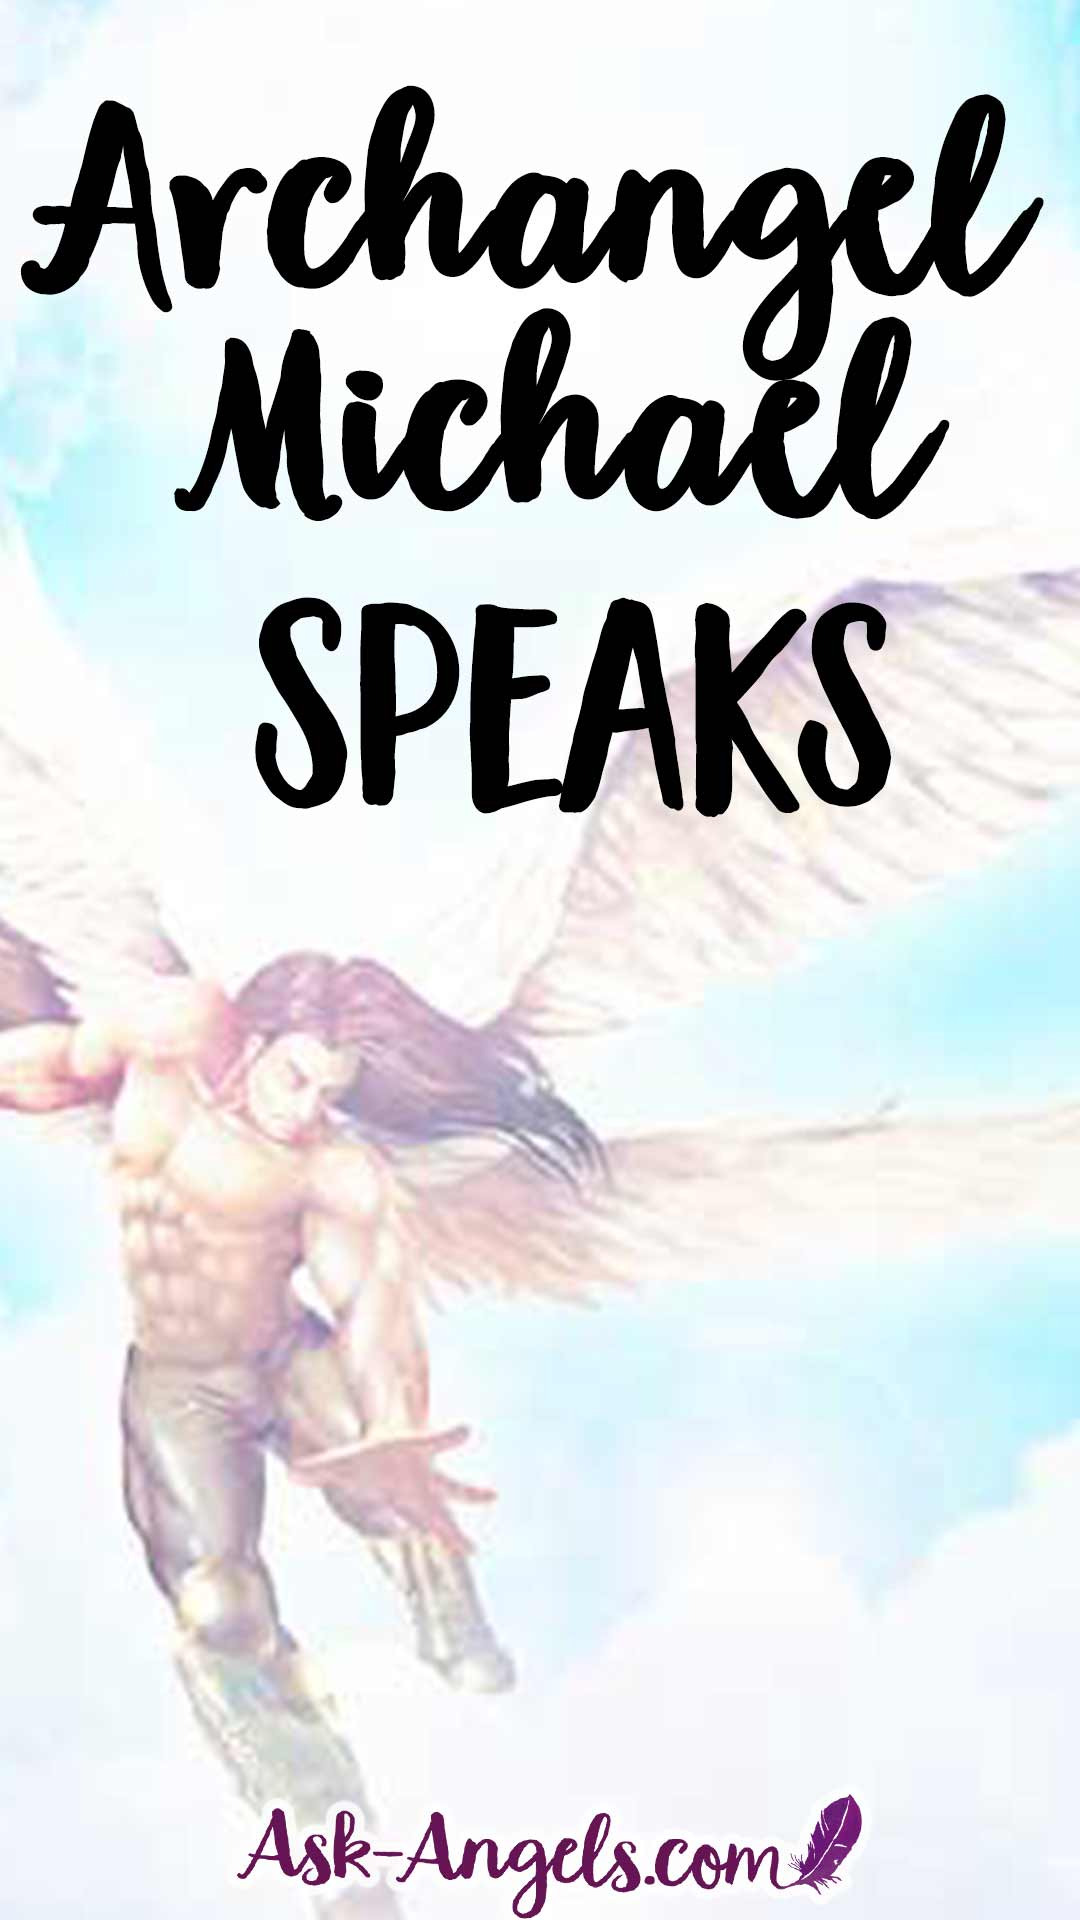 Archangel Michael speaks in this short angel message and frequency transmission. Become All That You Are.